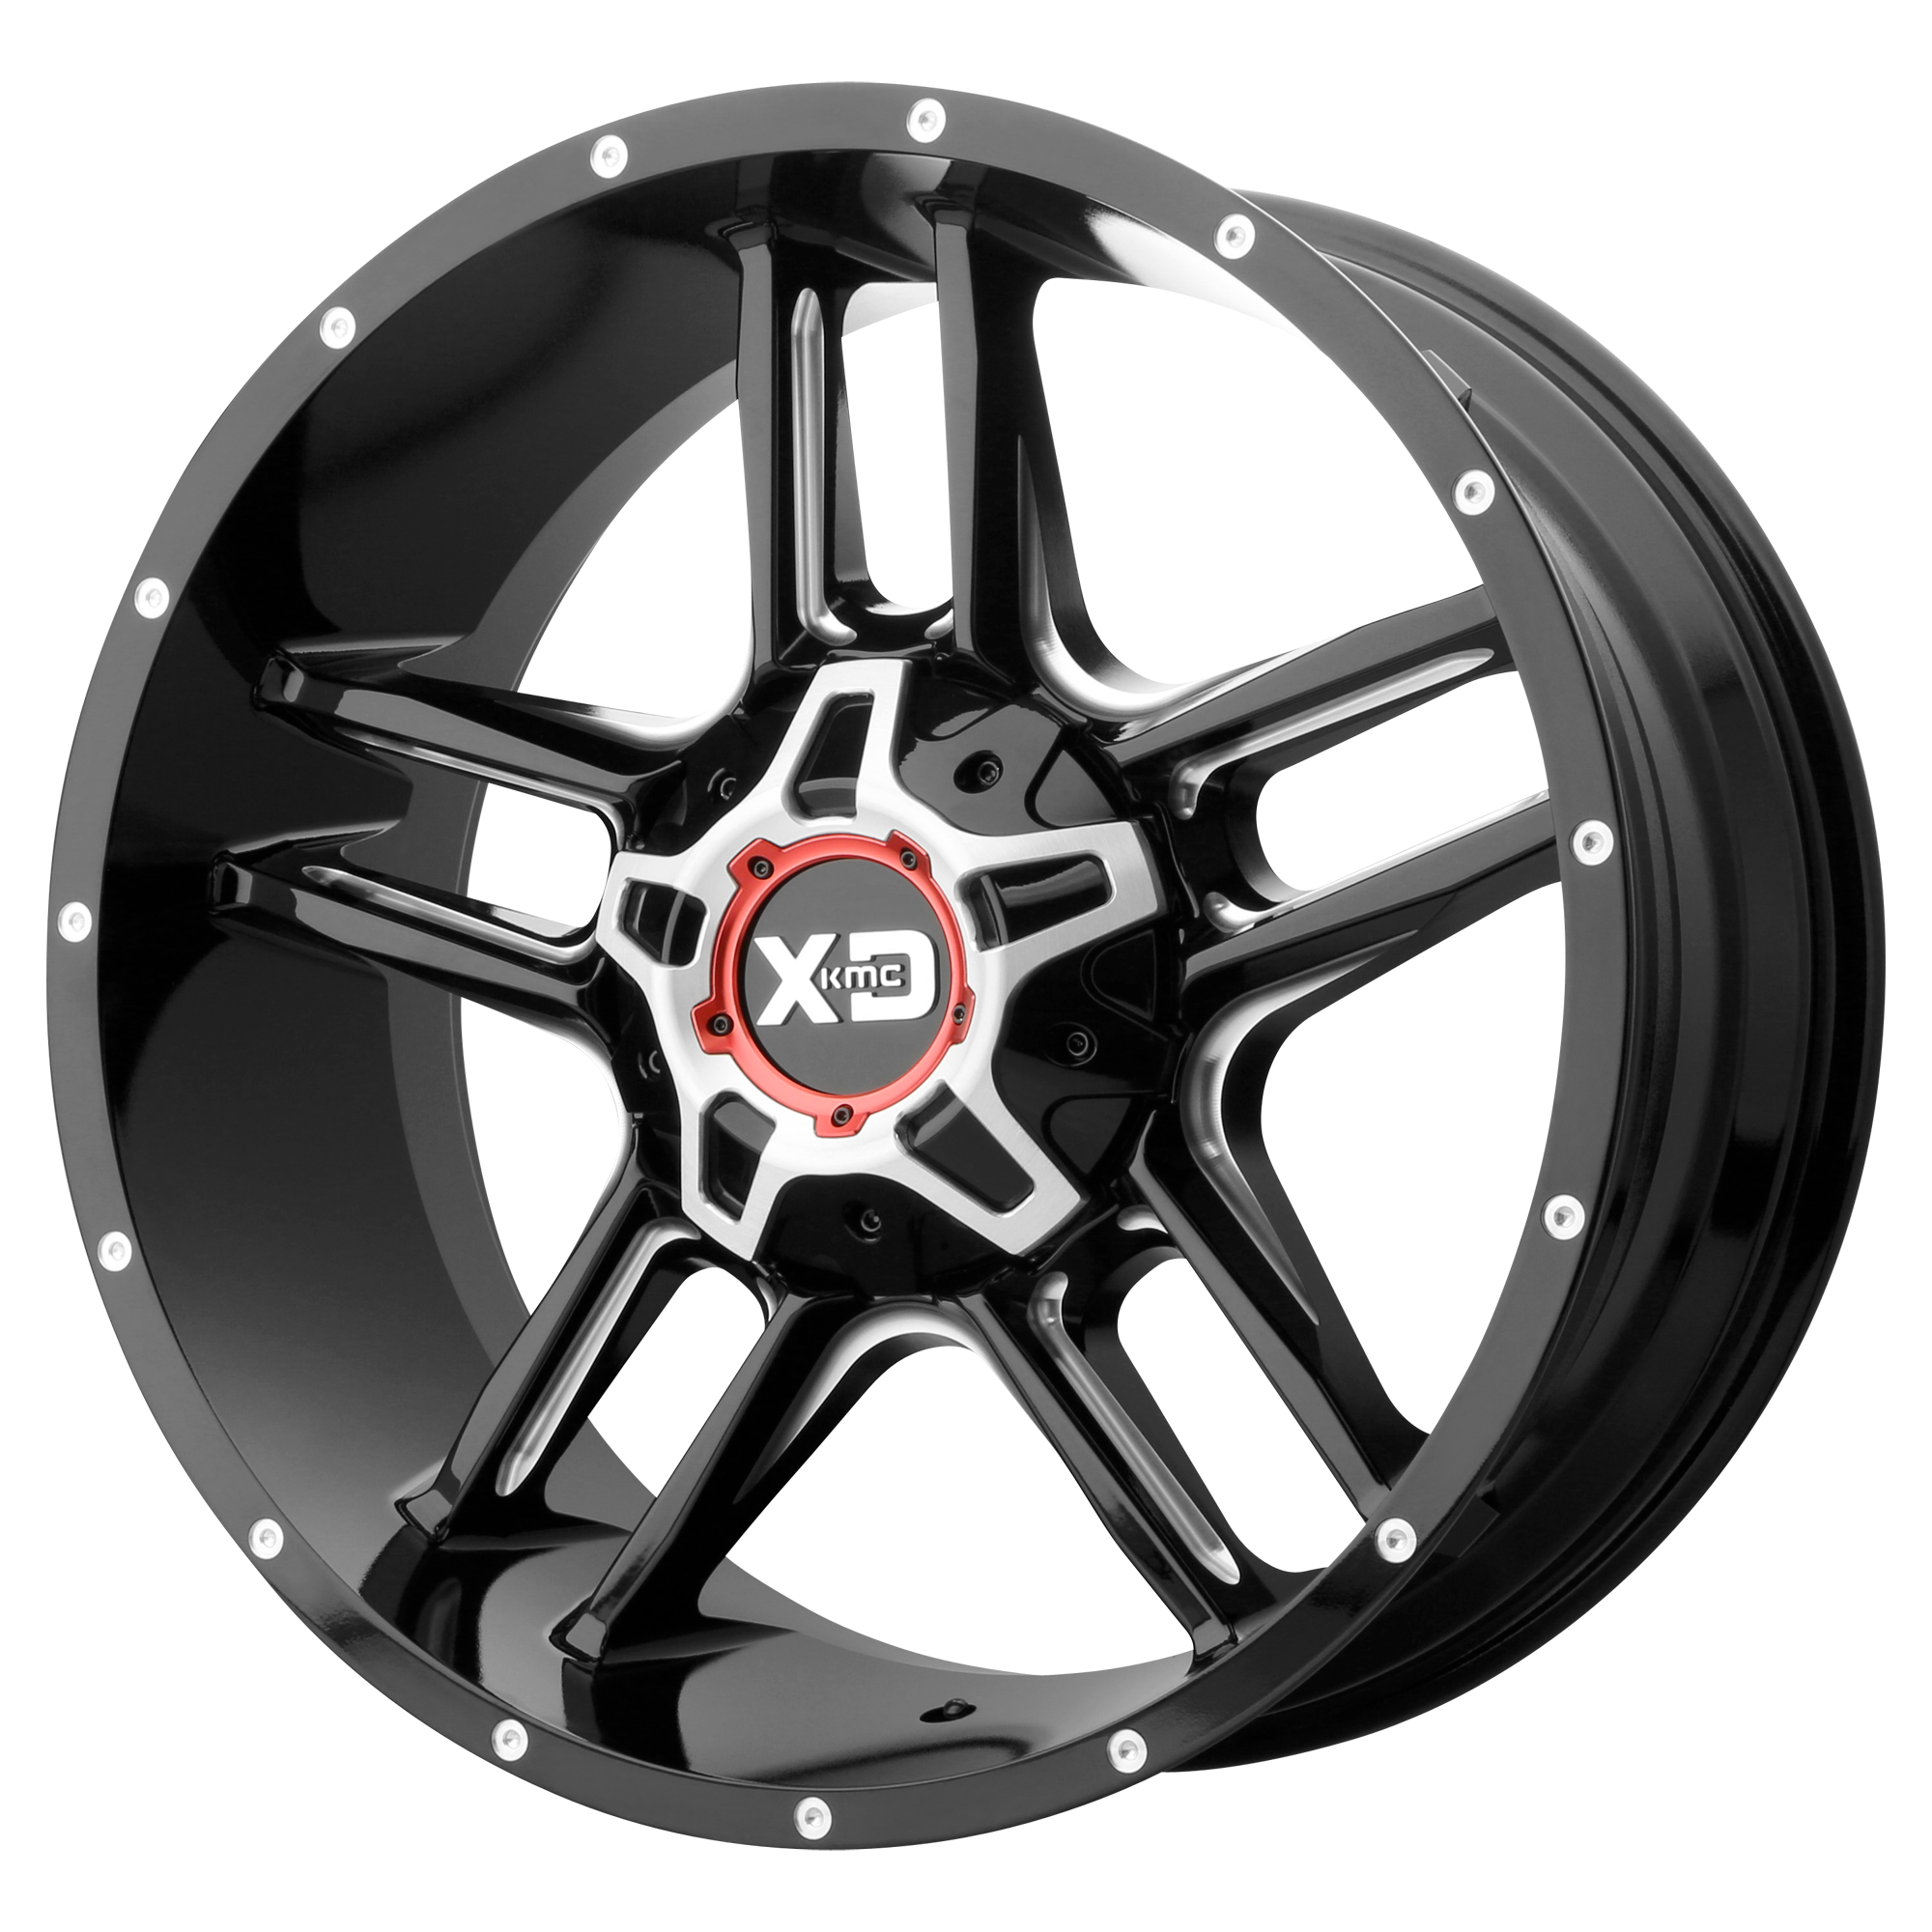 XD SERIES BY KMC WHEELS XD839 CLAMP Gloss Black Milled